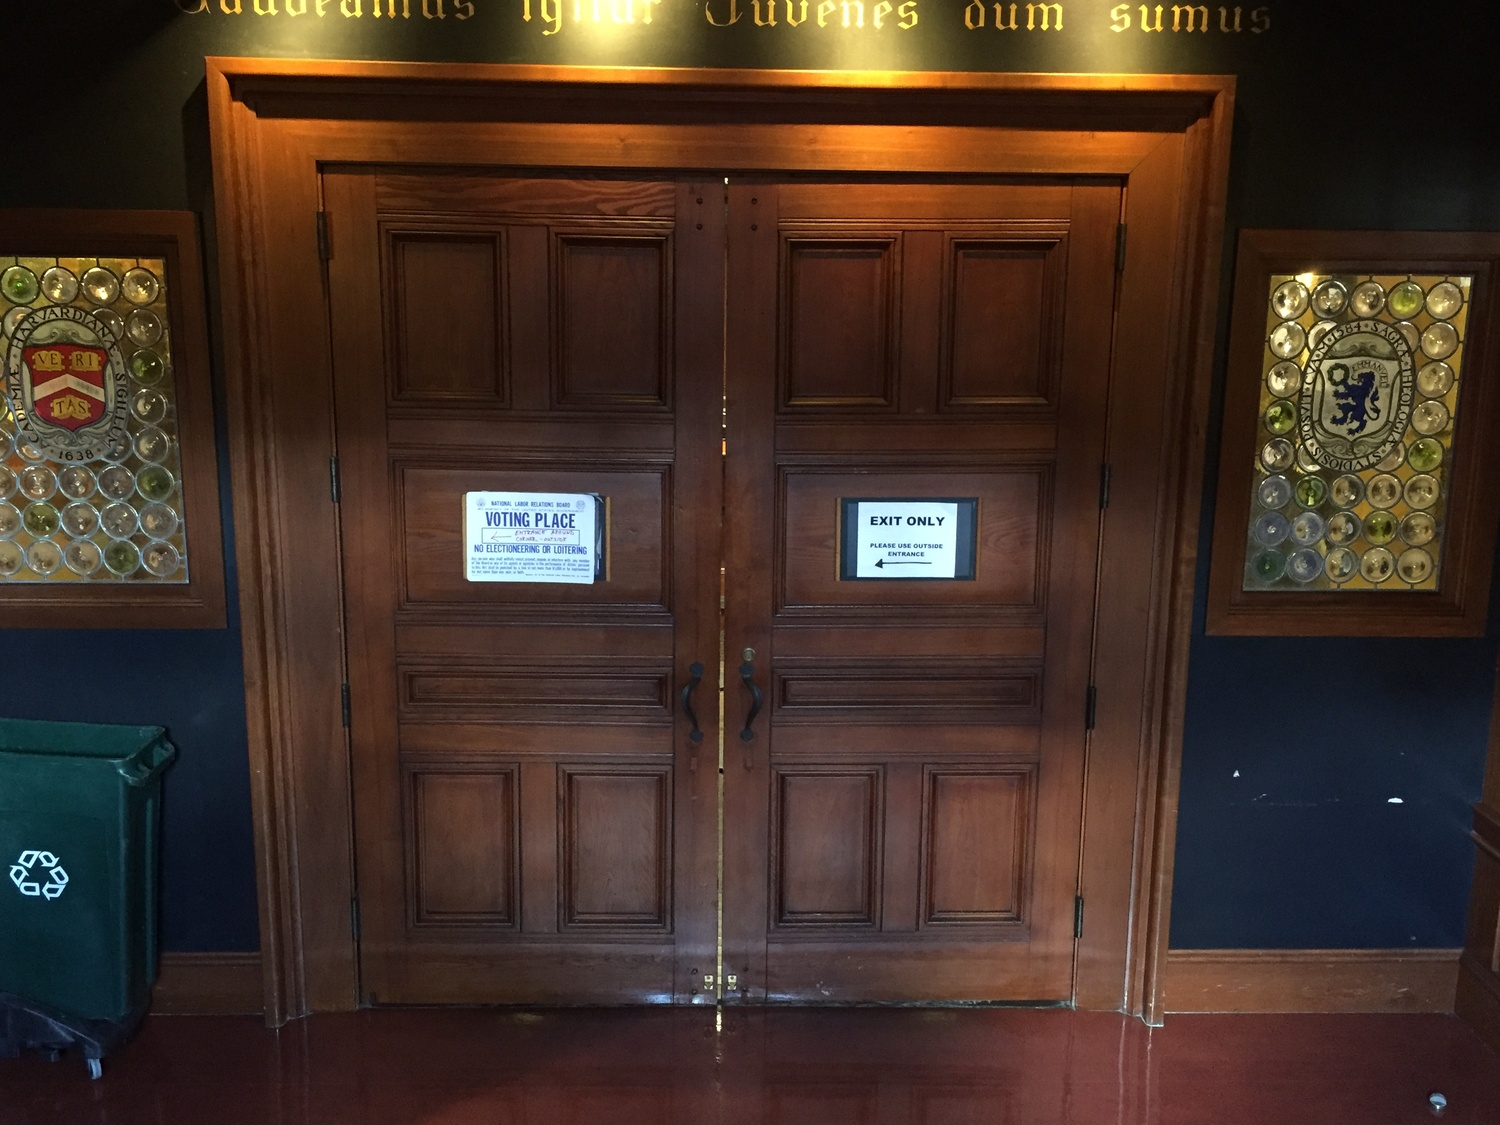 Doors to Voting Place